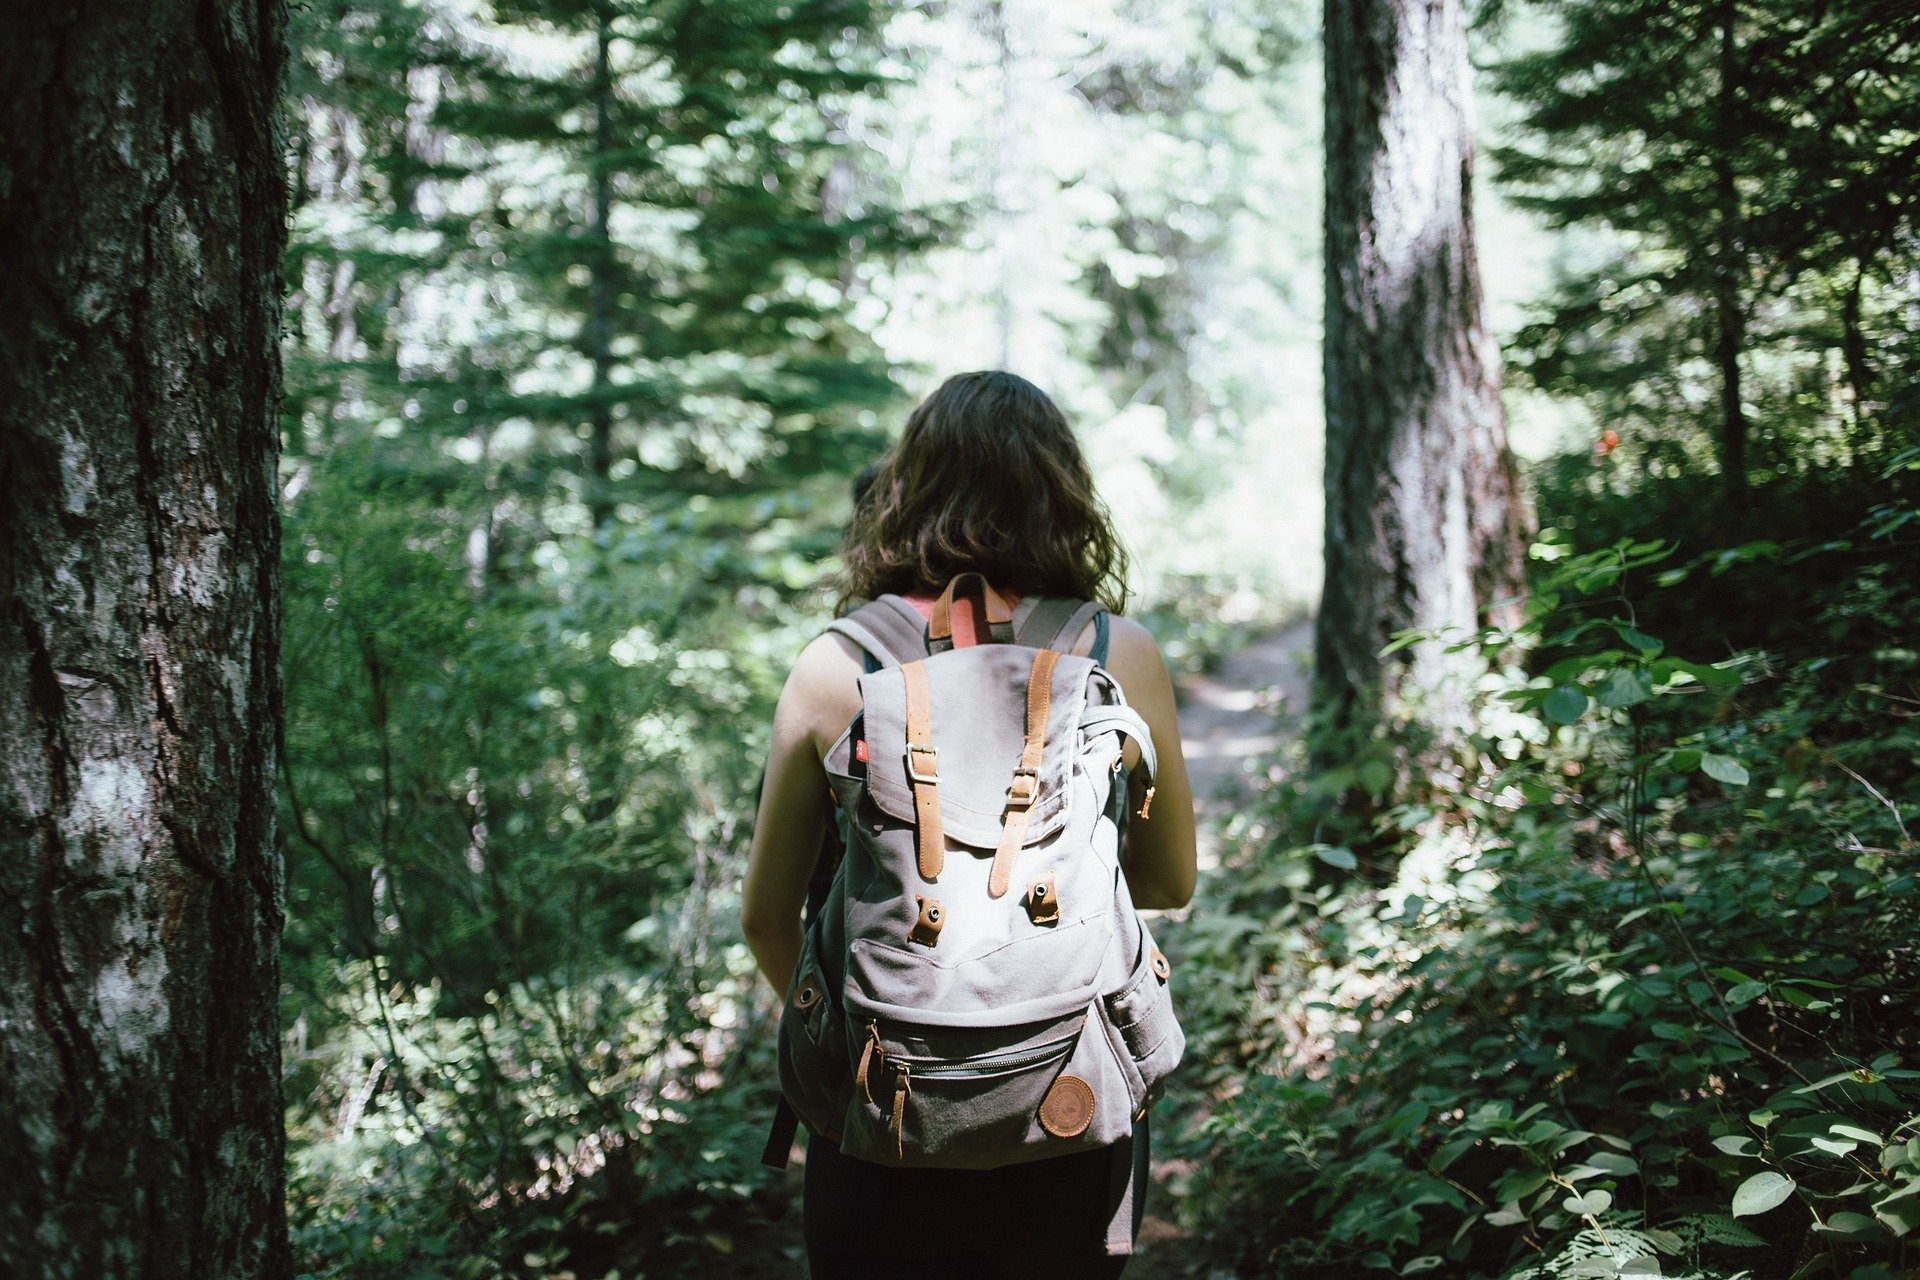 Pictured - A woman carrying a gray backpack walking in the woods | Source: Pixabay